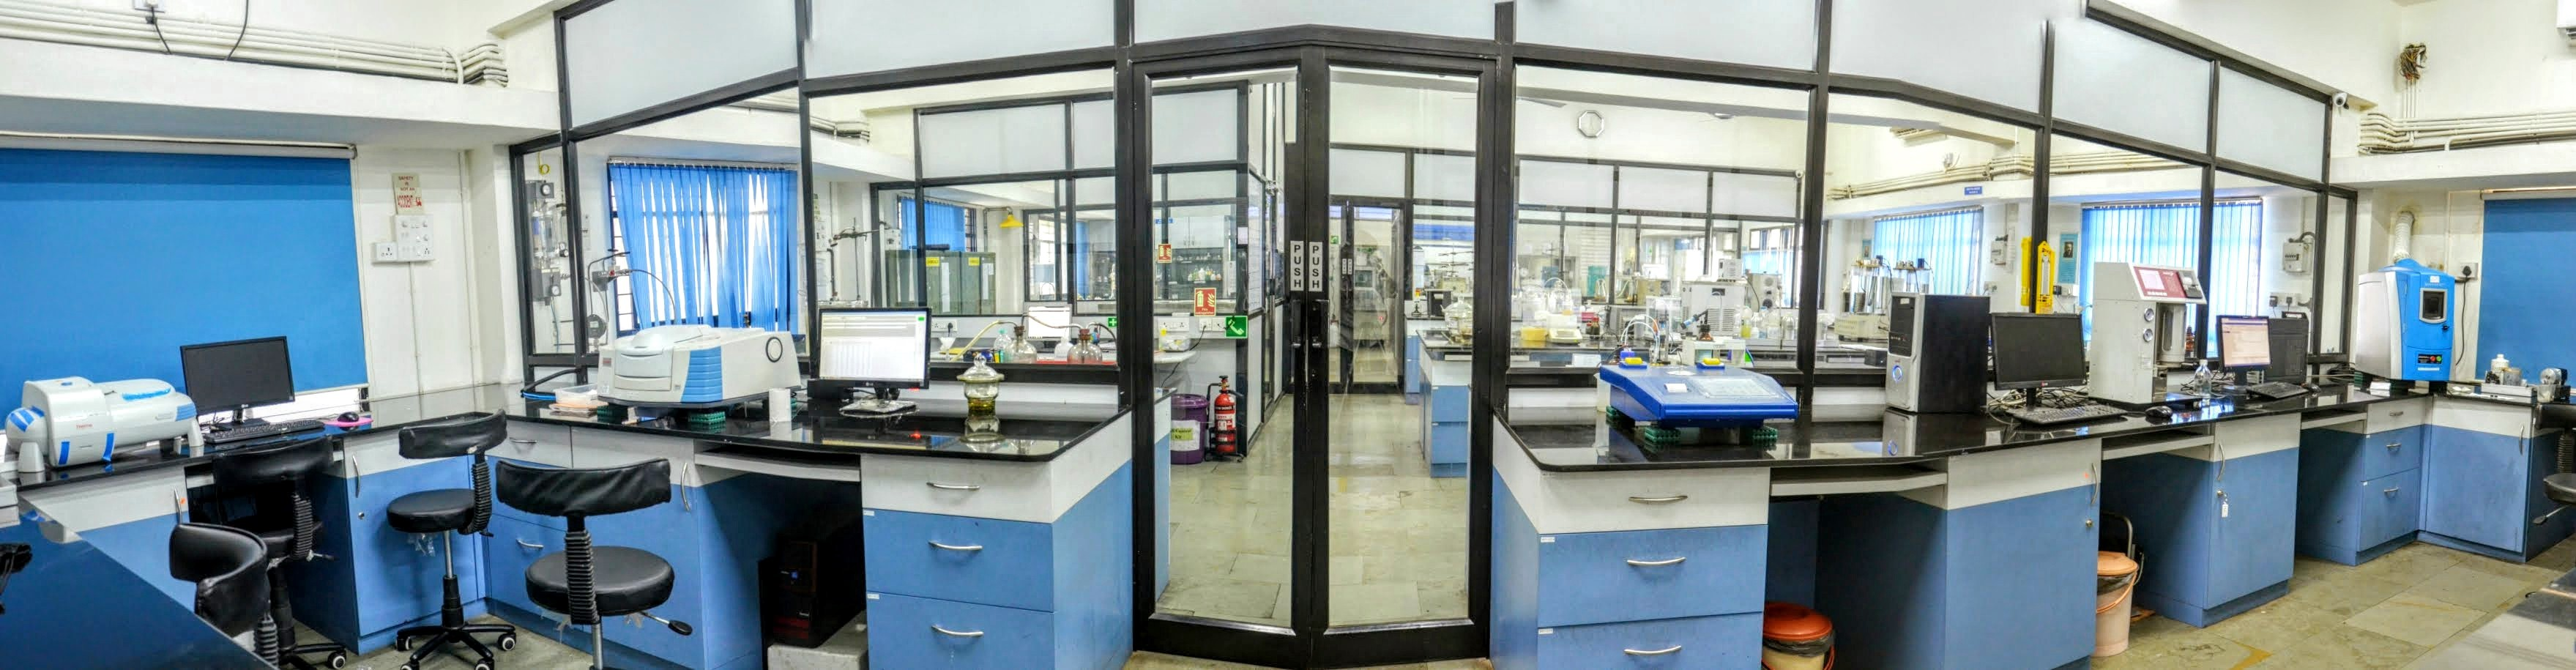 Chem-Tech Laboratories Private Limited | LinkedIn